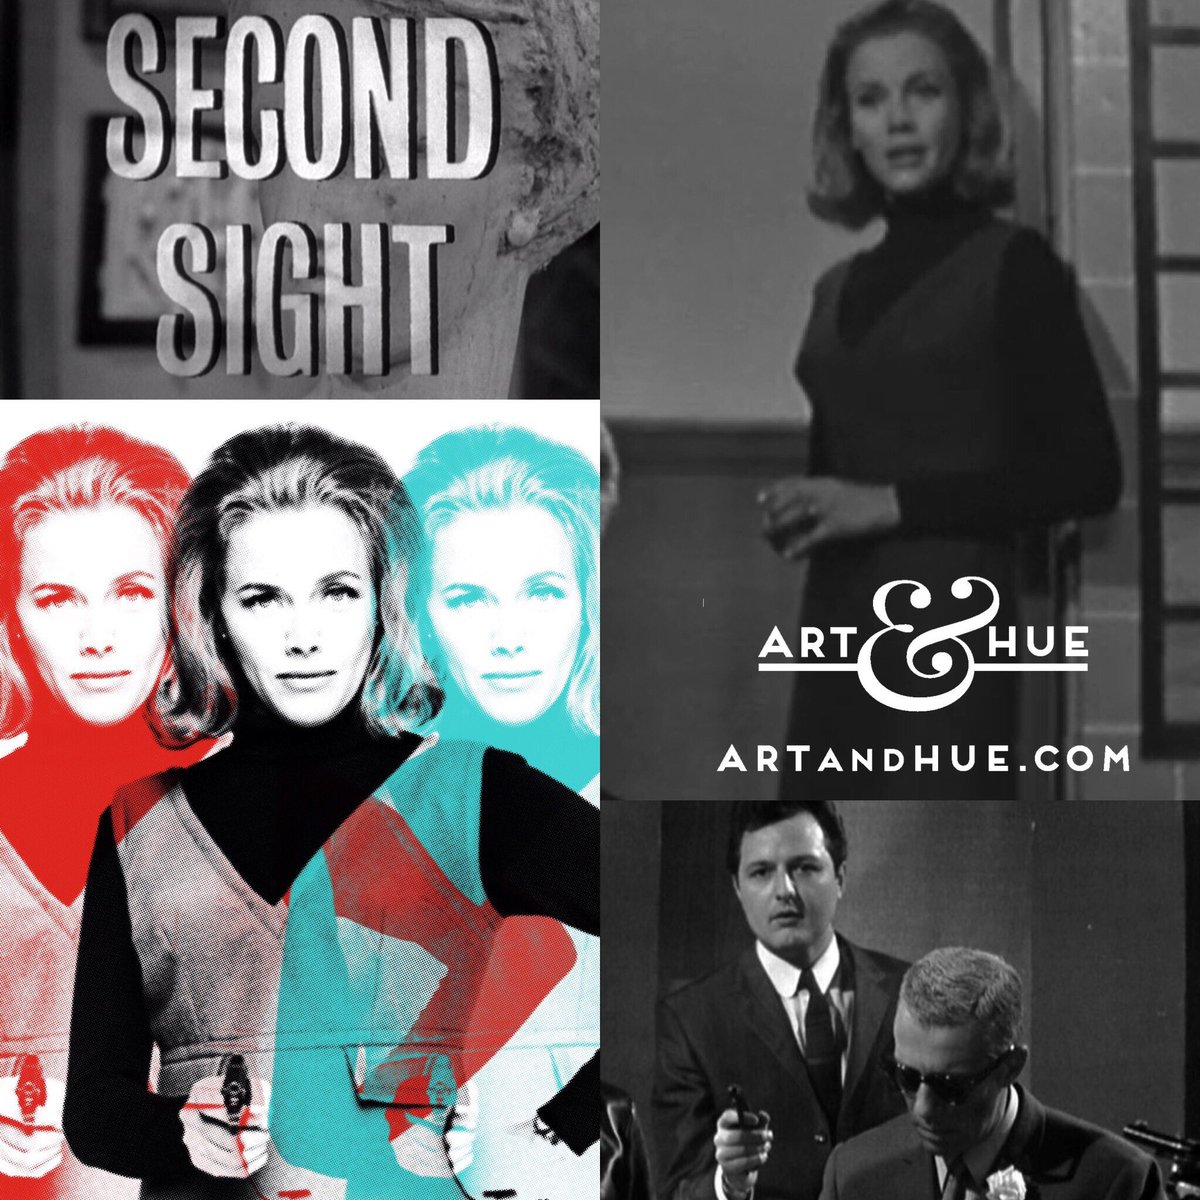 On this day in 1964 this episode of #TheAvengers premiered on UK TV   http:// artandhue.com/theavengers  &nbsp;     #honorblackman  #patrickmacnee #JohnSteed<br>http://pic.twitter.com/lEfKoZxXaa